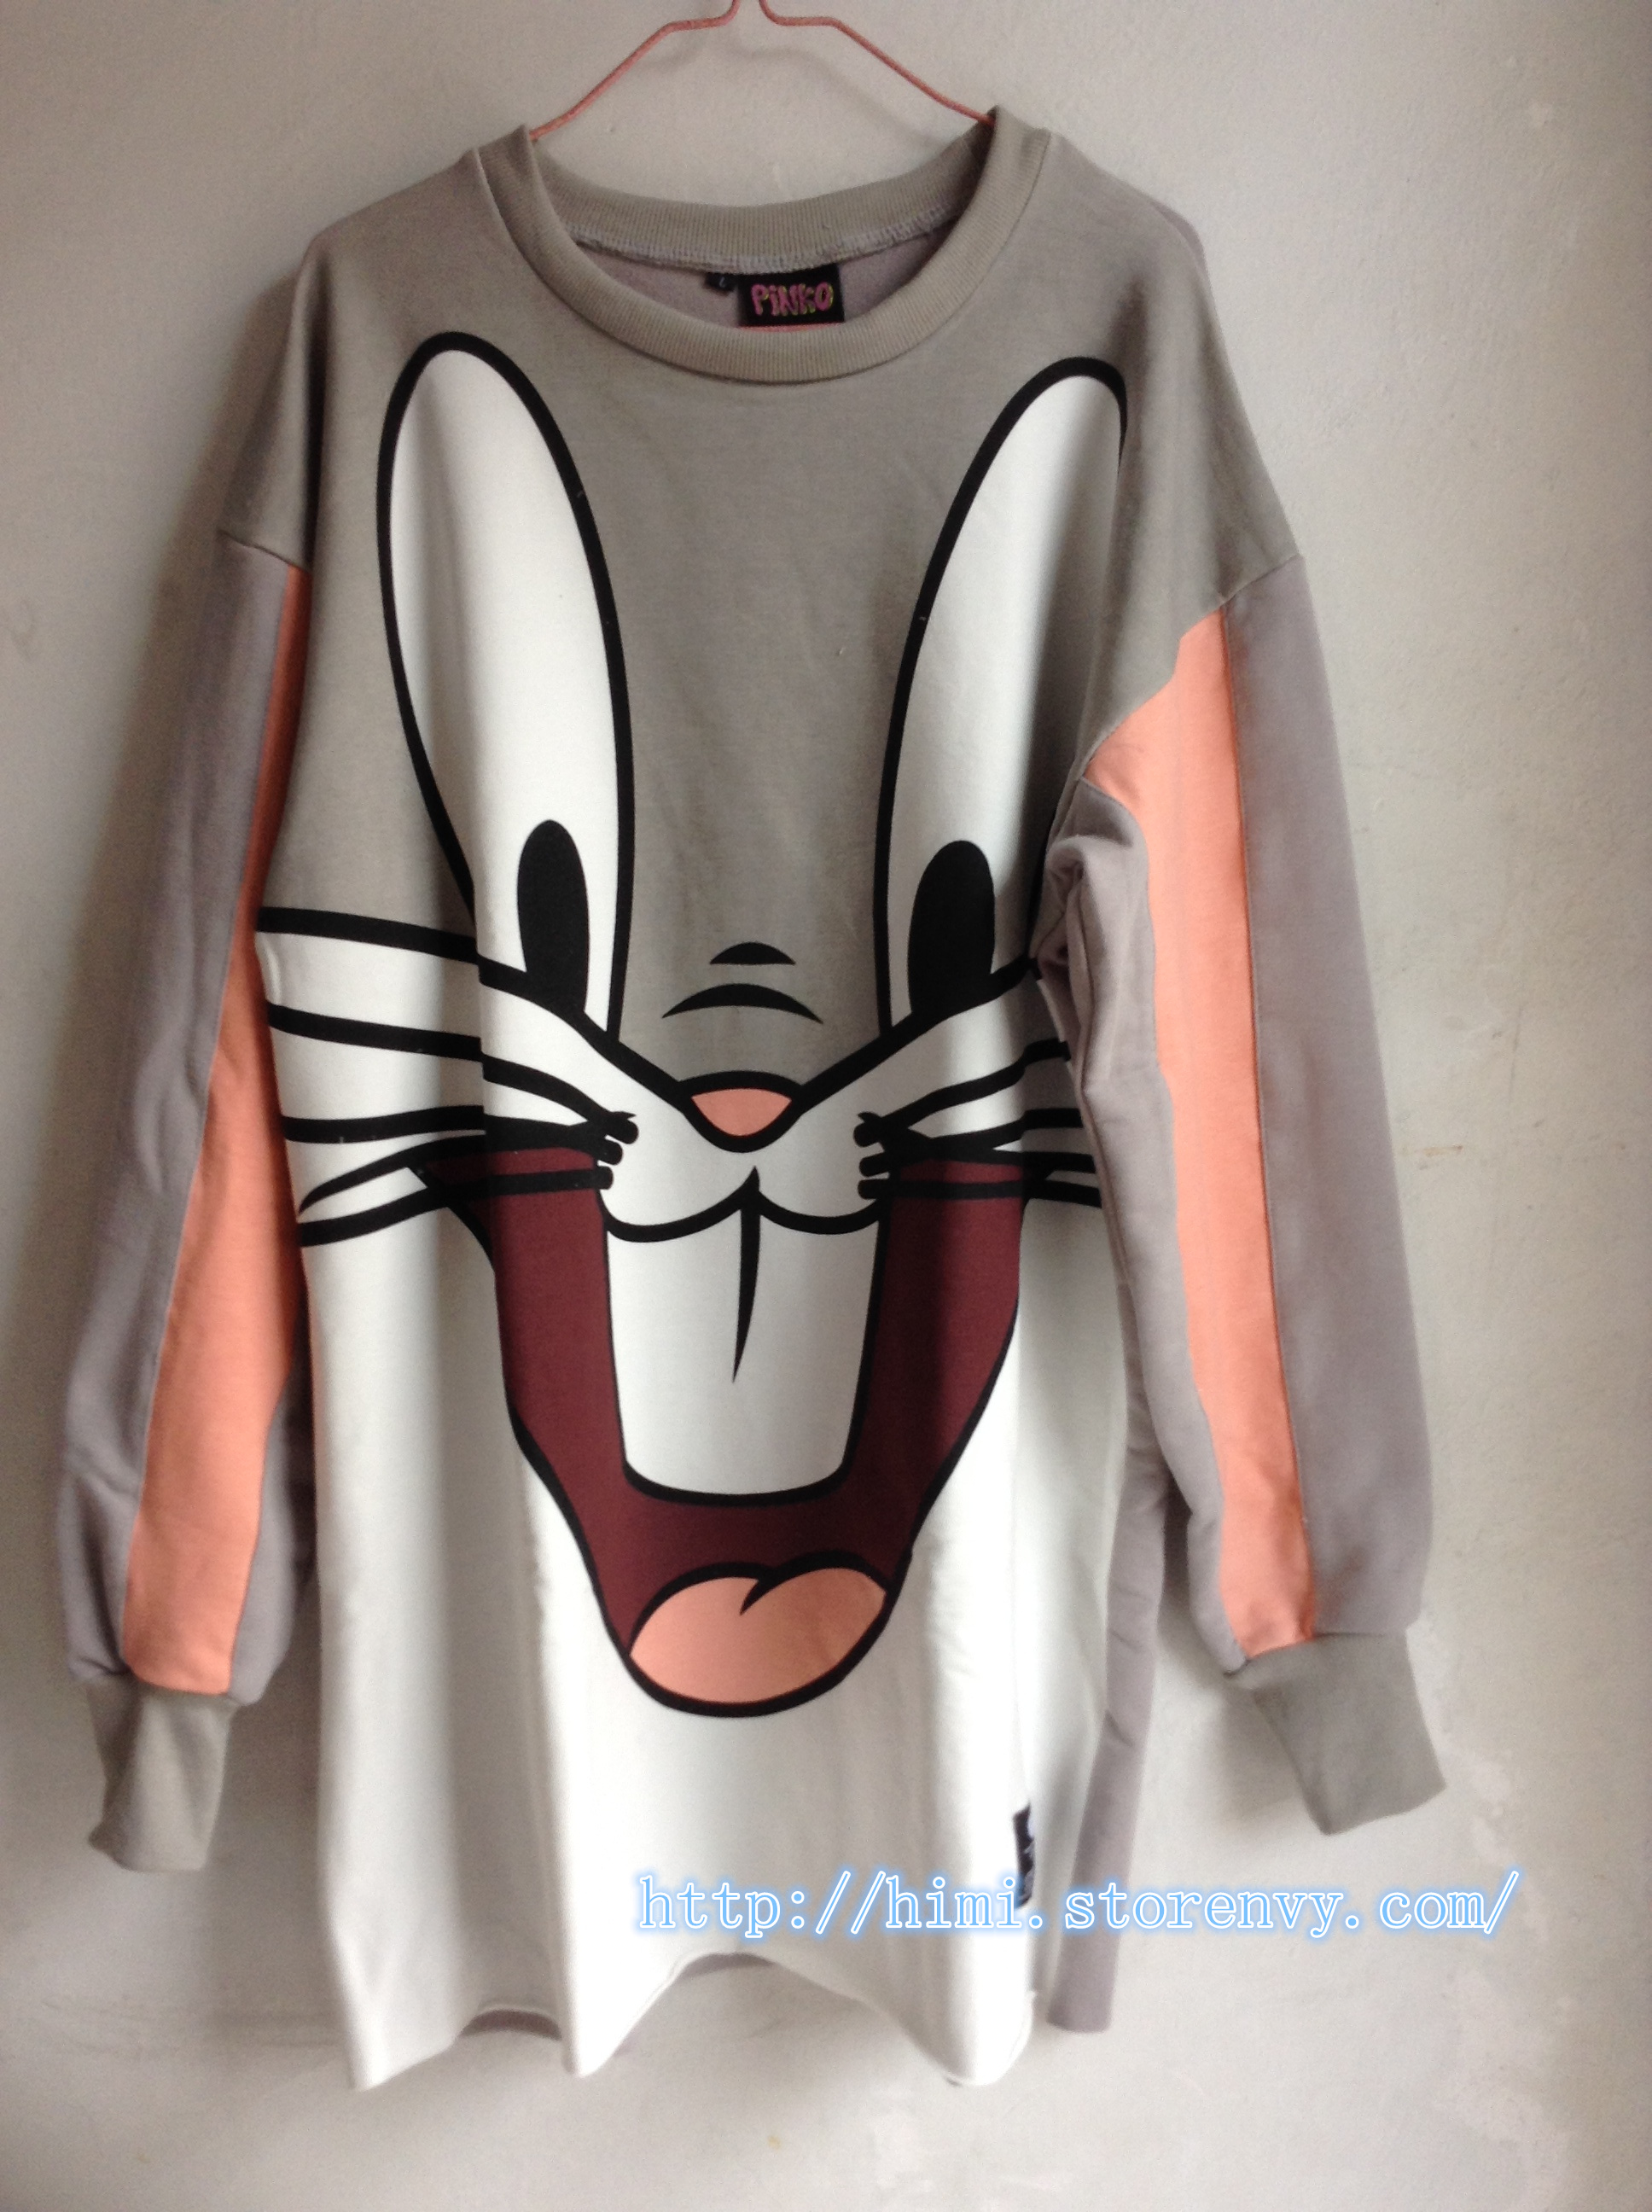 Rabbit harajuku sweater dress Free shipping · HIMI'Store · Online Store Powered by Storenvy